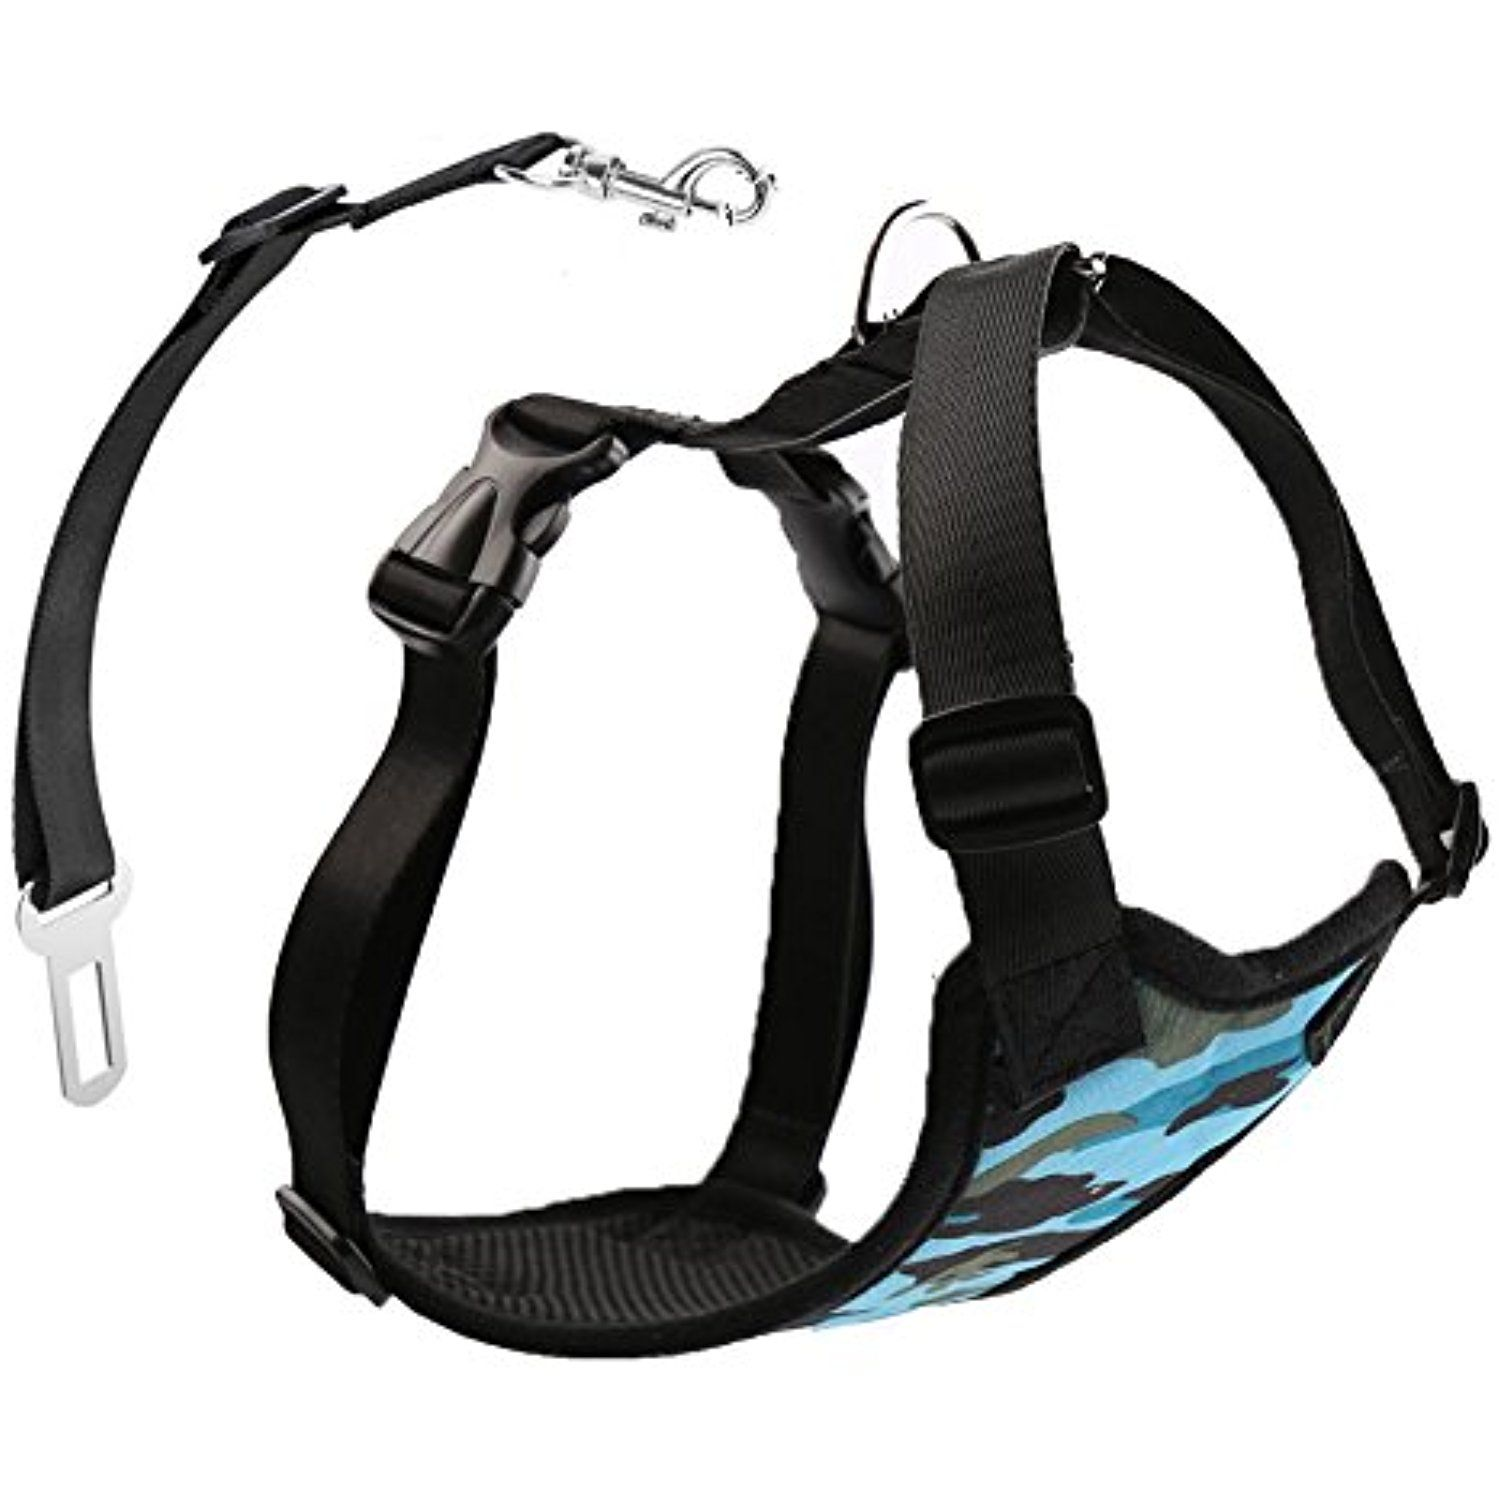 Stock Show Pet Dog Vehicle Harnesses with Car Safety Belt